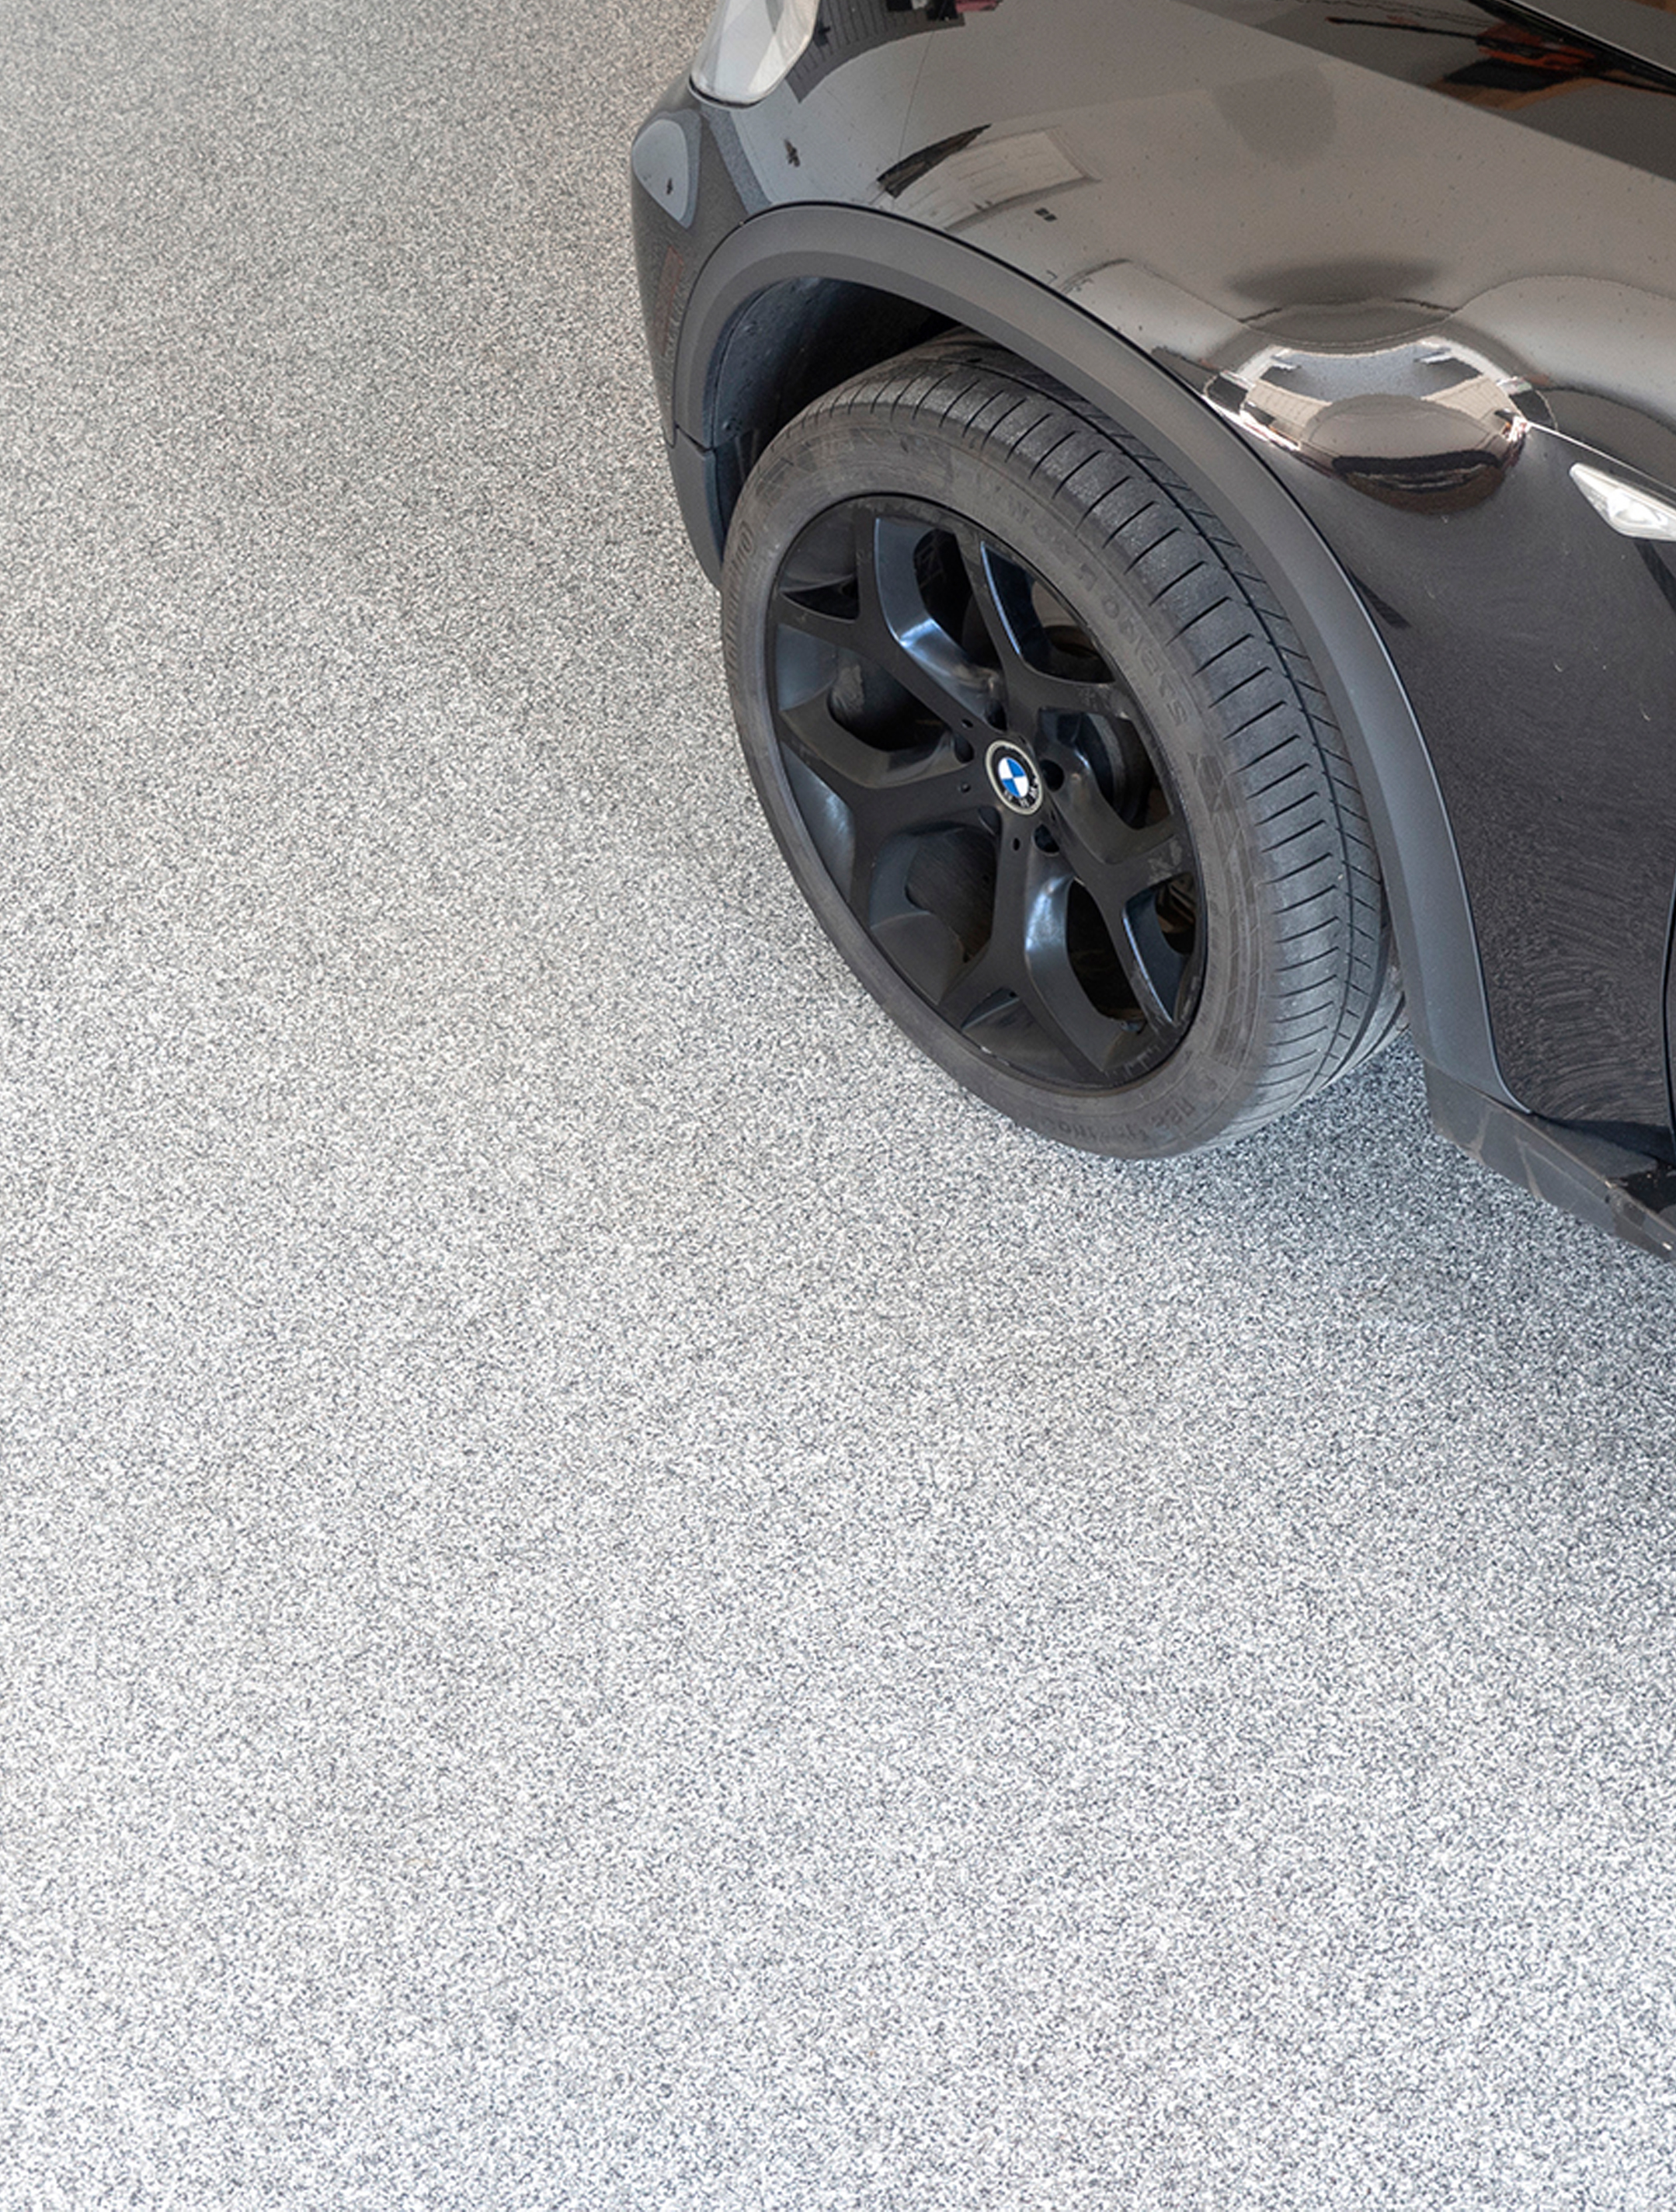 Epoxy Garage Floors - Garage Floor Coatings are for those that love their garage. They are for those that love to keep their garage clean. They understand that their garage is a part of their home. Our Garage Floors allow you to clean up, protect and show off your garage.